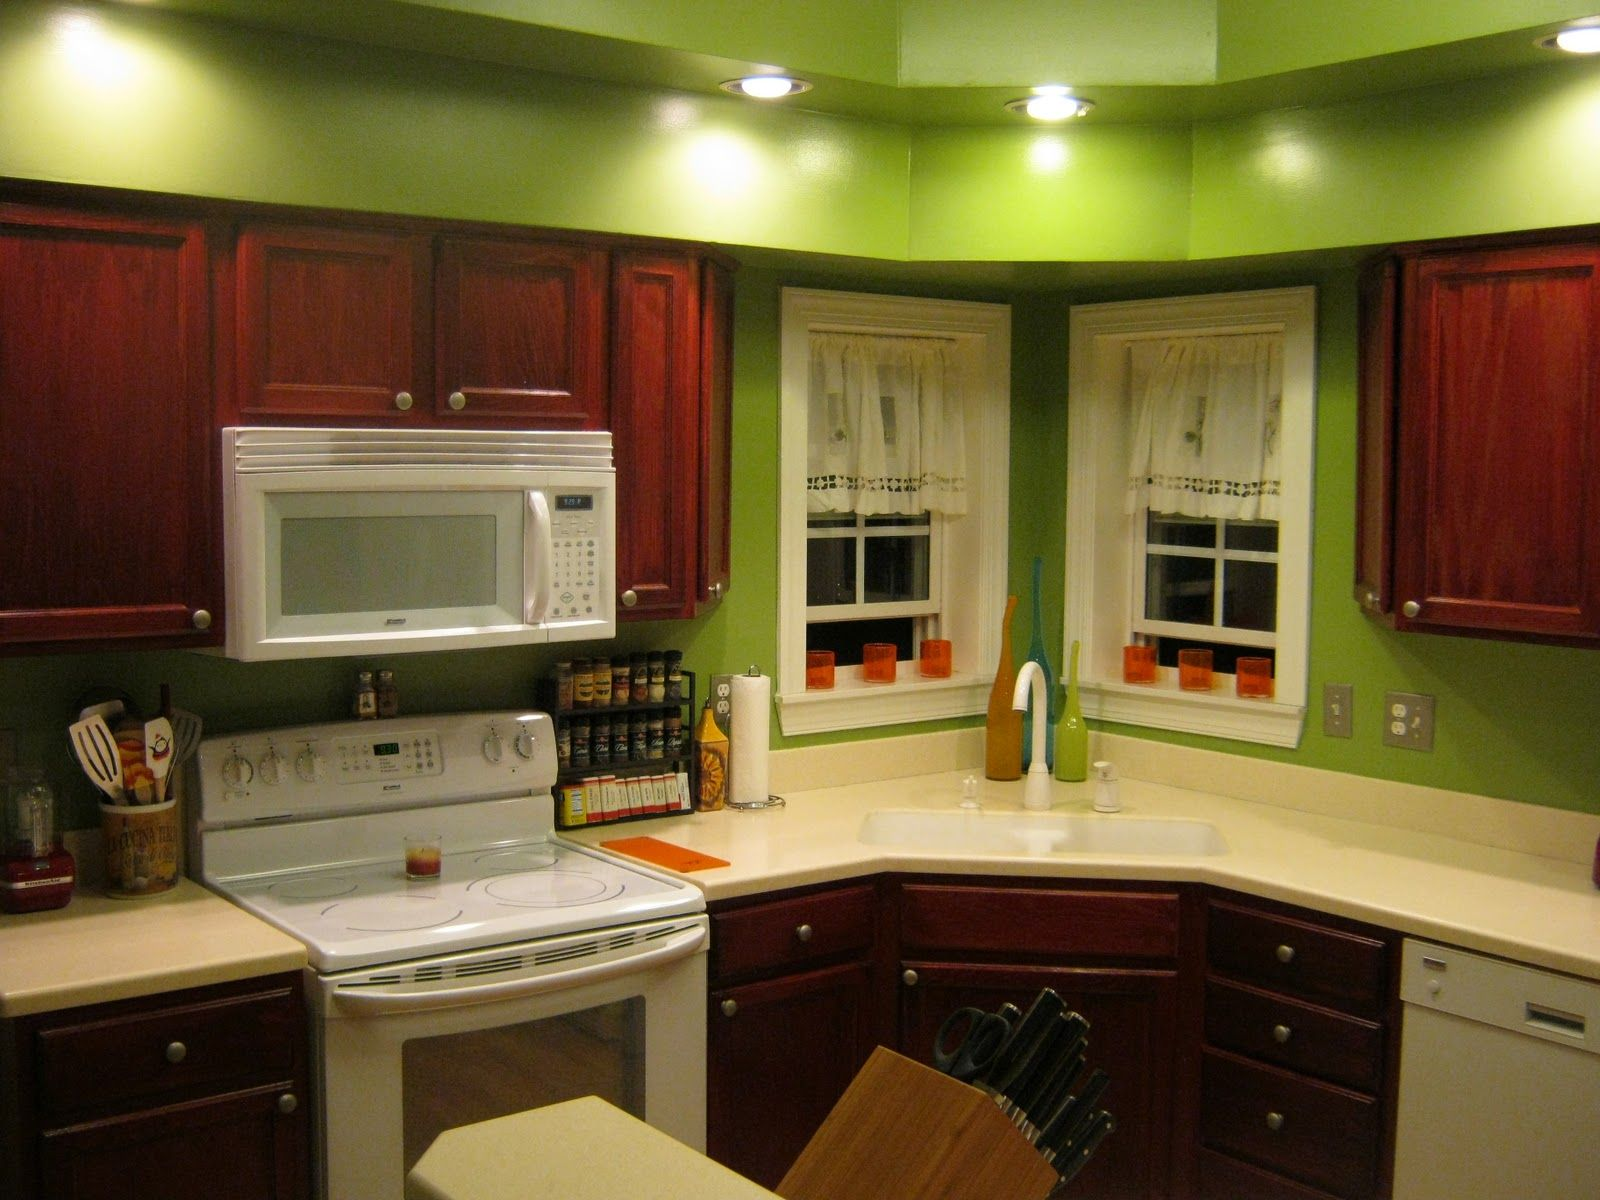 Refresh With Painted Kitchen Cabinet: New Kitchen Wall Paint Ideas With  Kitchen Color Ideas Oak Cabinets Kitchen Paint Color Ideas For Kitchen ~  Kitchen ...